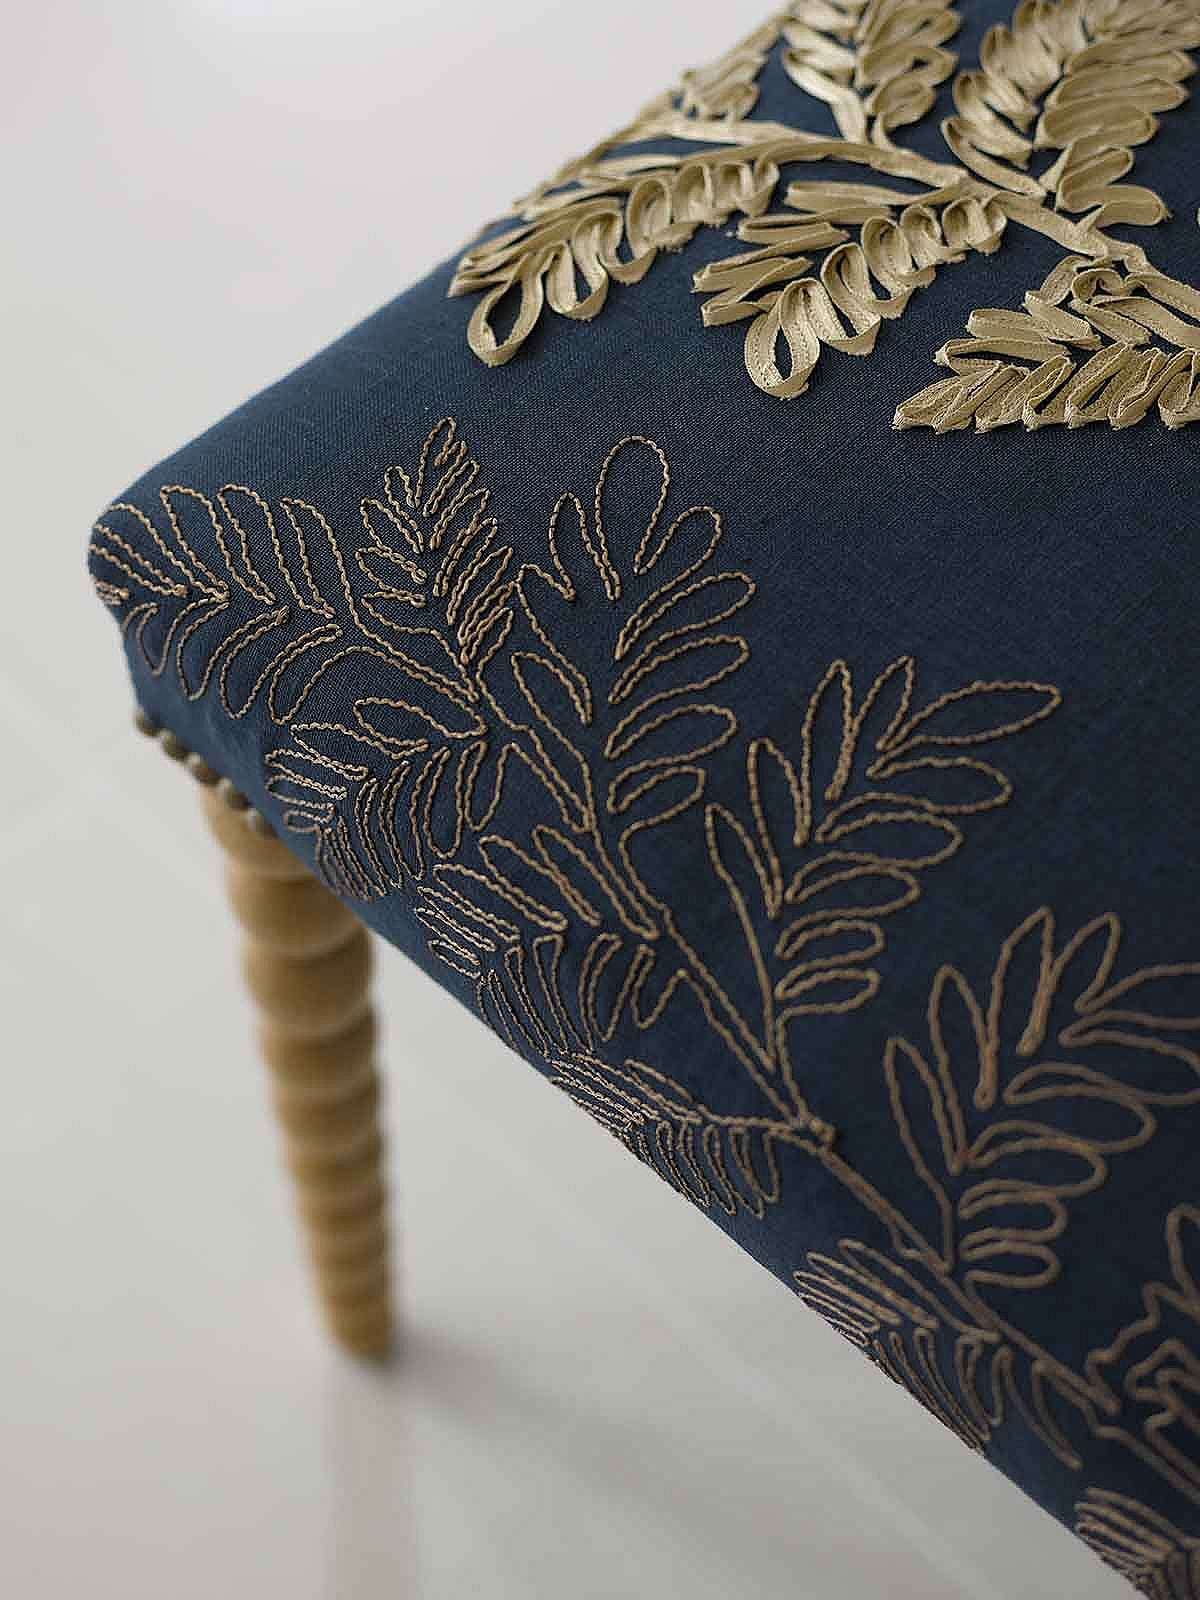 Hand made hallway stool with hand turned bobbin legs and close nailing detail